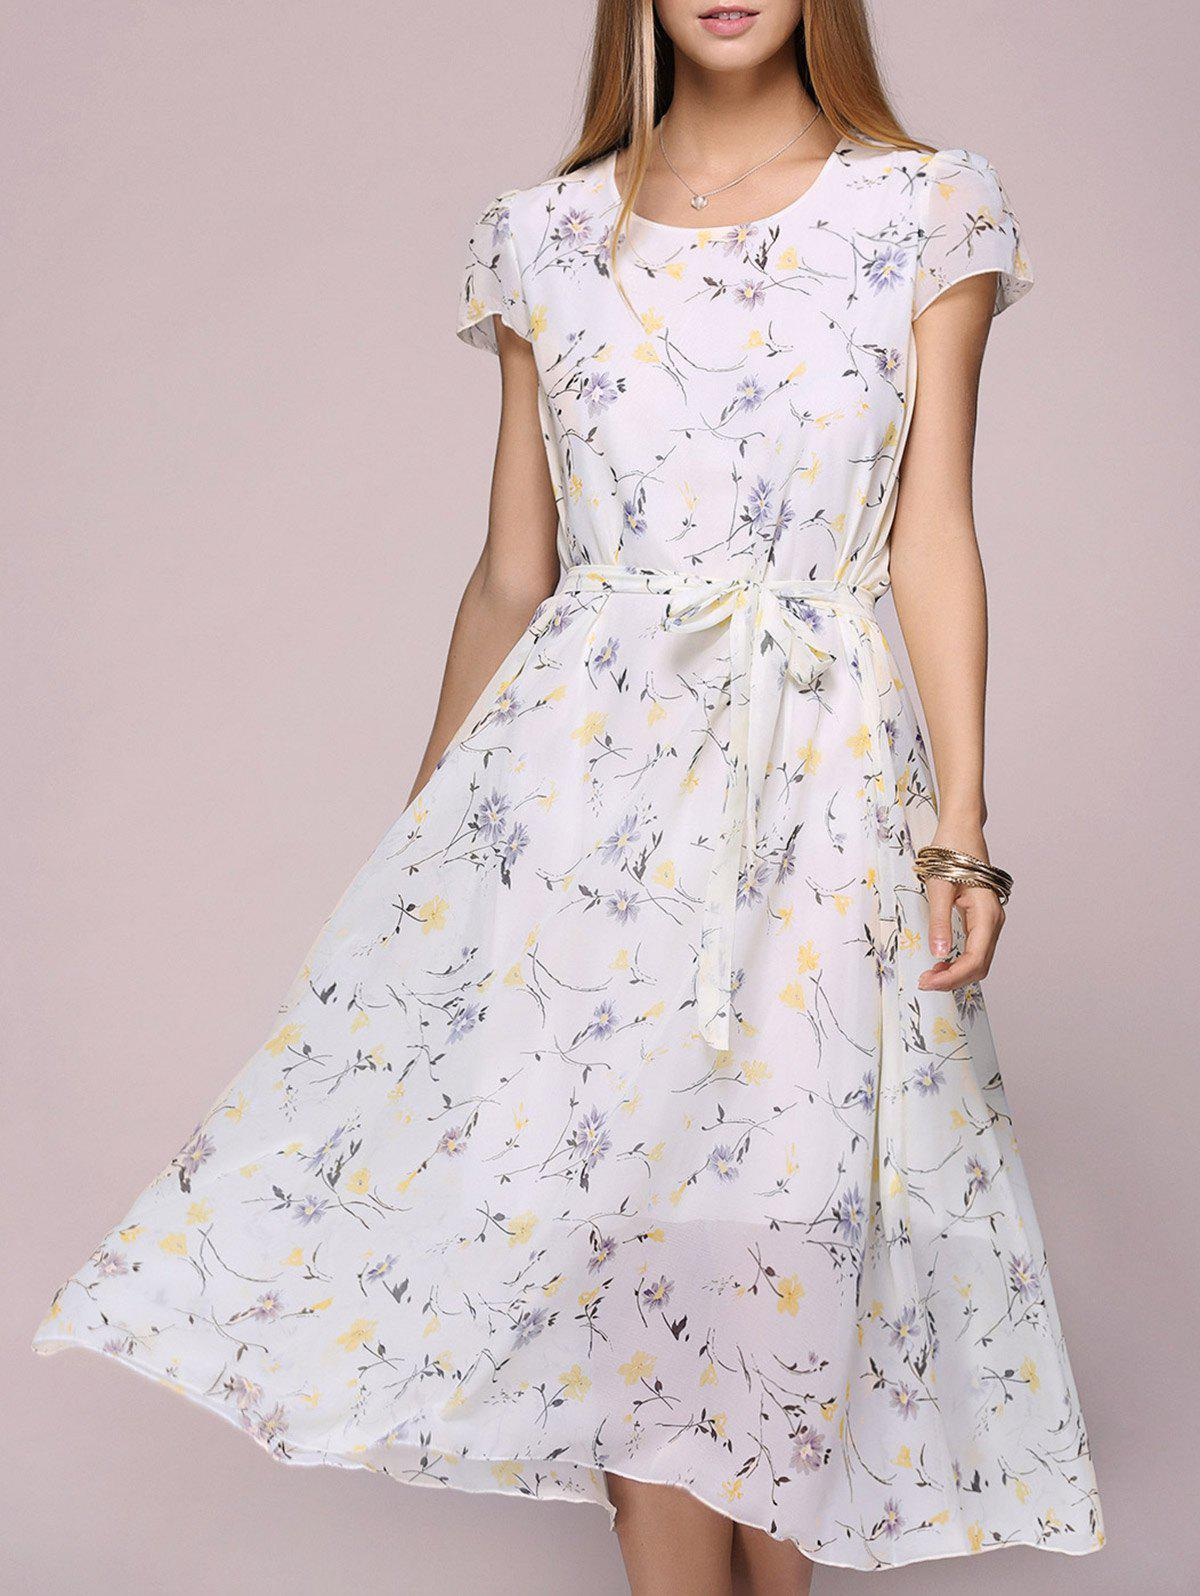 Cap Sleeve Tiny Floral Chiffon Dress - LIGHT YELLOW ONE SIZE(FIT SIZE XS TO M)